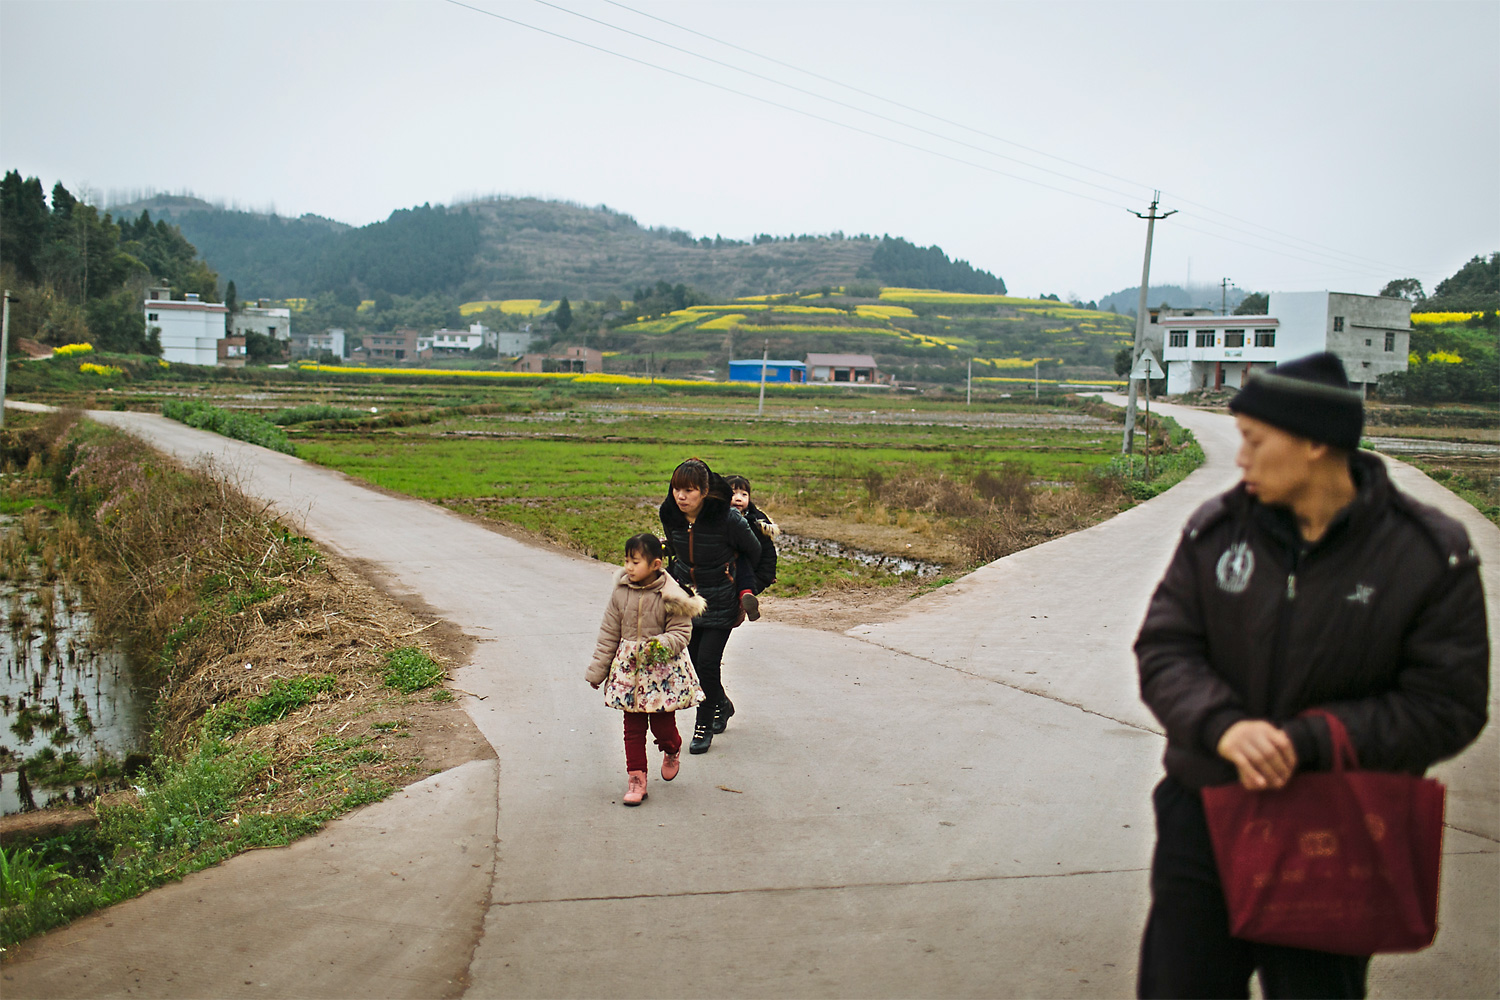 Li Mingjin looks at his wife, Ning Xianfang, and their two daughters as they walk towards home, in Longjing village, March 6, 2015. After Mingjin got sick, Xianfang had to take care of the whole family. She doesn't have time to work and Mingjin is not able to work, so the family doesn't have any income.